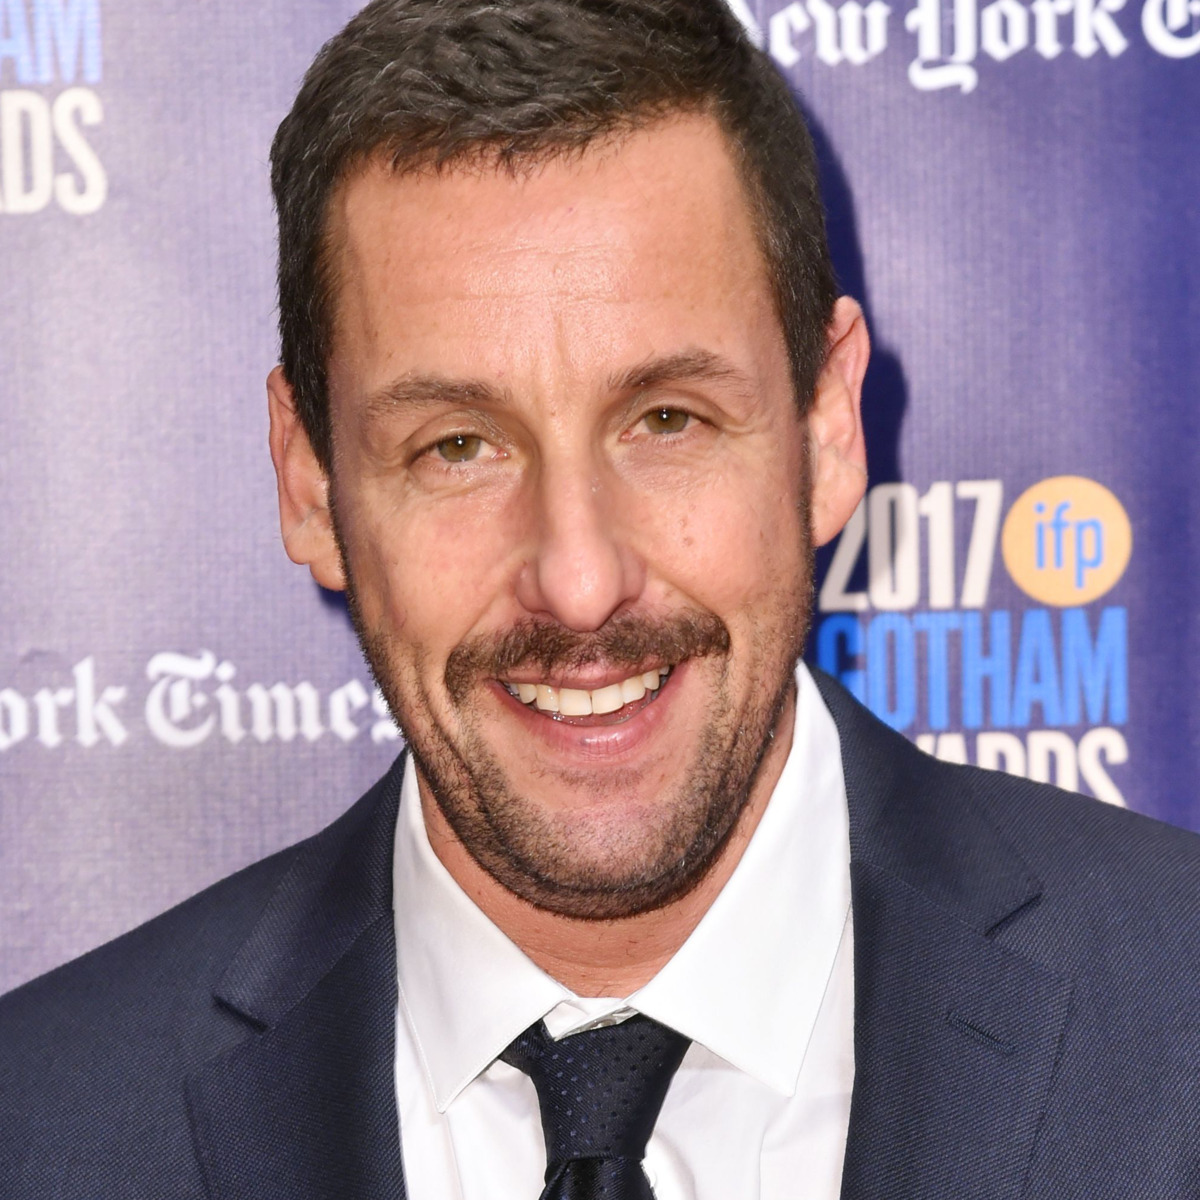 SNL': Adam Sandler to Host for the First Time